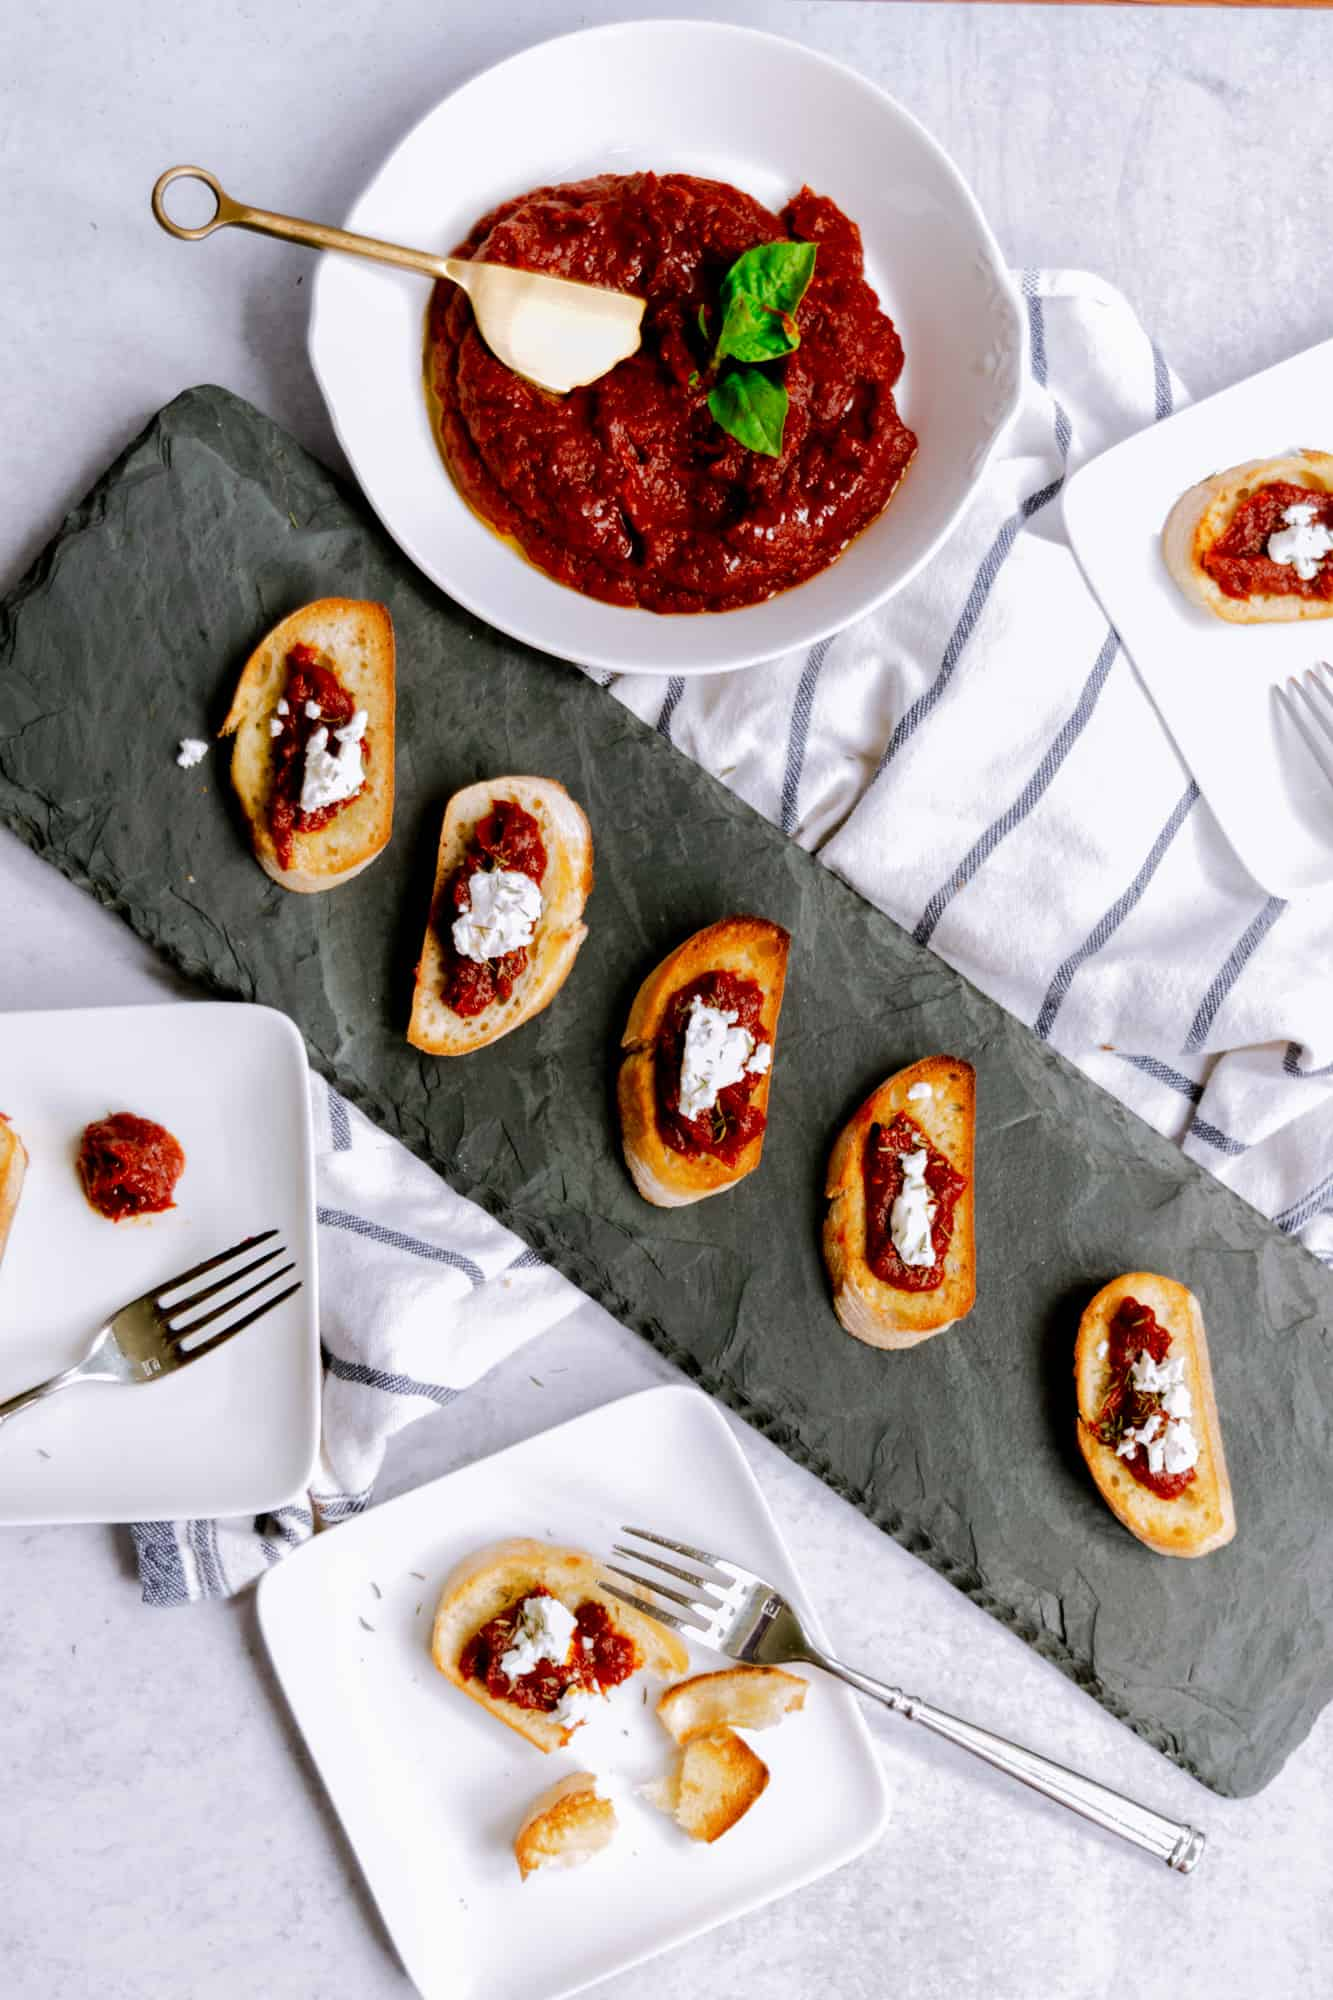 white bowl with tomato jam and black slate board with crostini, jam and goat cheese and white plates with crostini